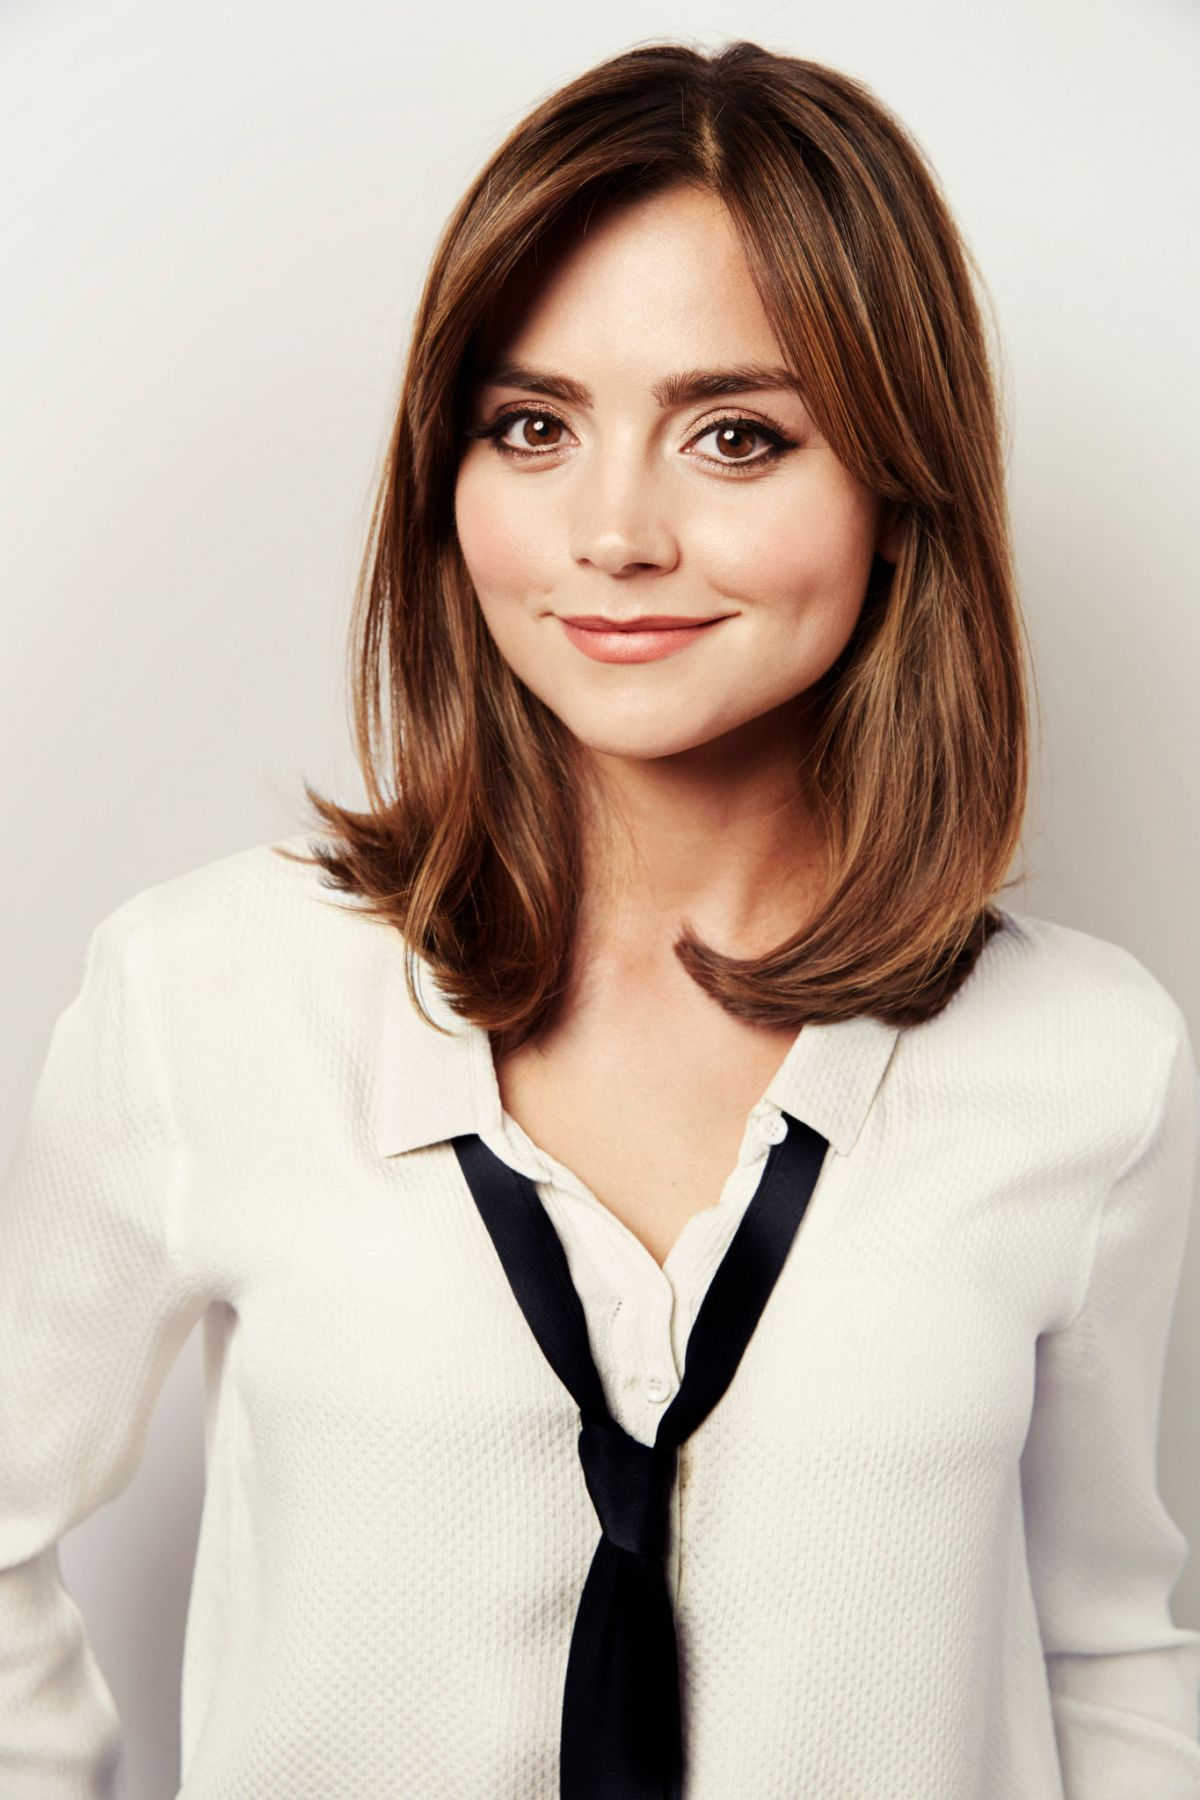 Jenna-louise Coleman Backgrounds on Wallpapers Vista